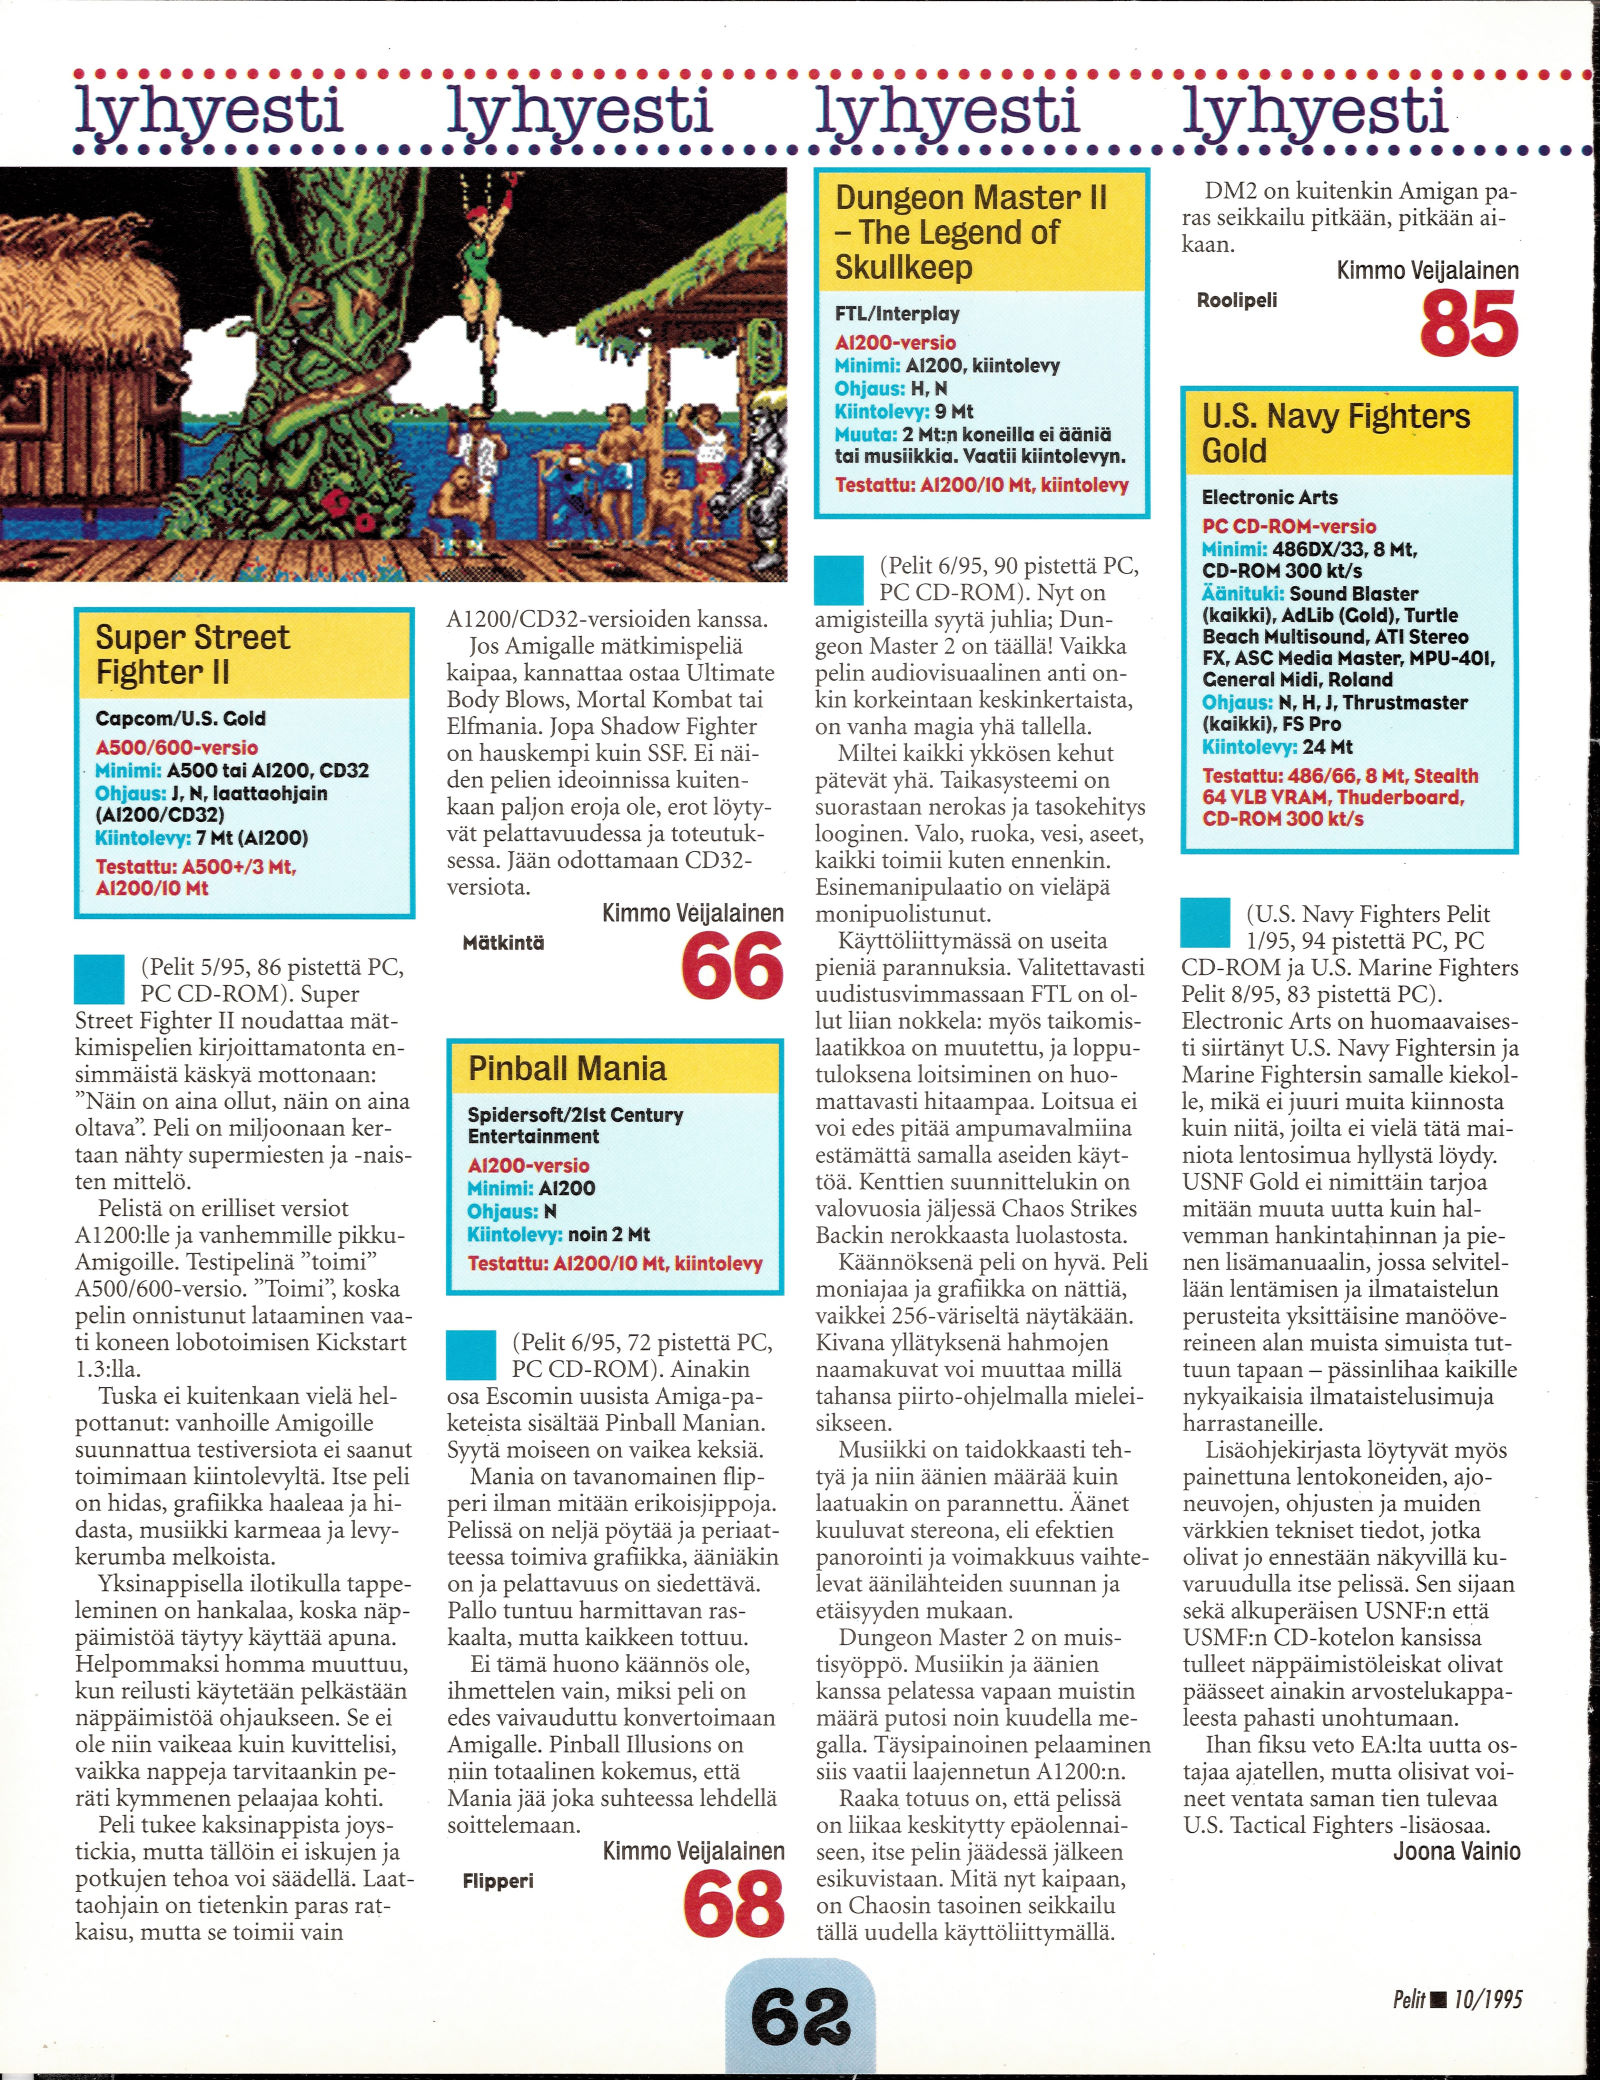 Dungeon Master II for Amiga Review published in Finnish magazine 'Pelit', October 1995, Page 62